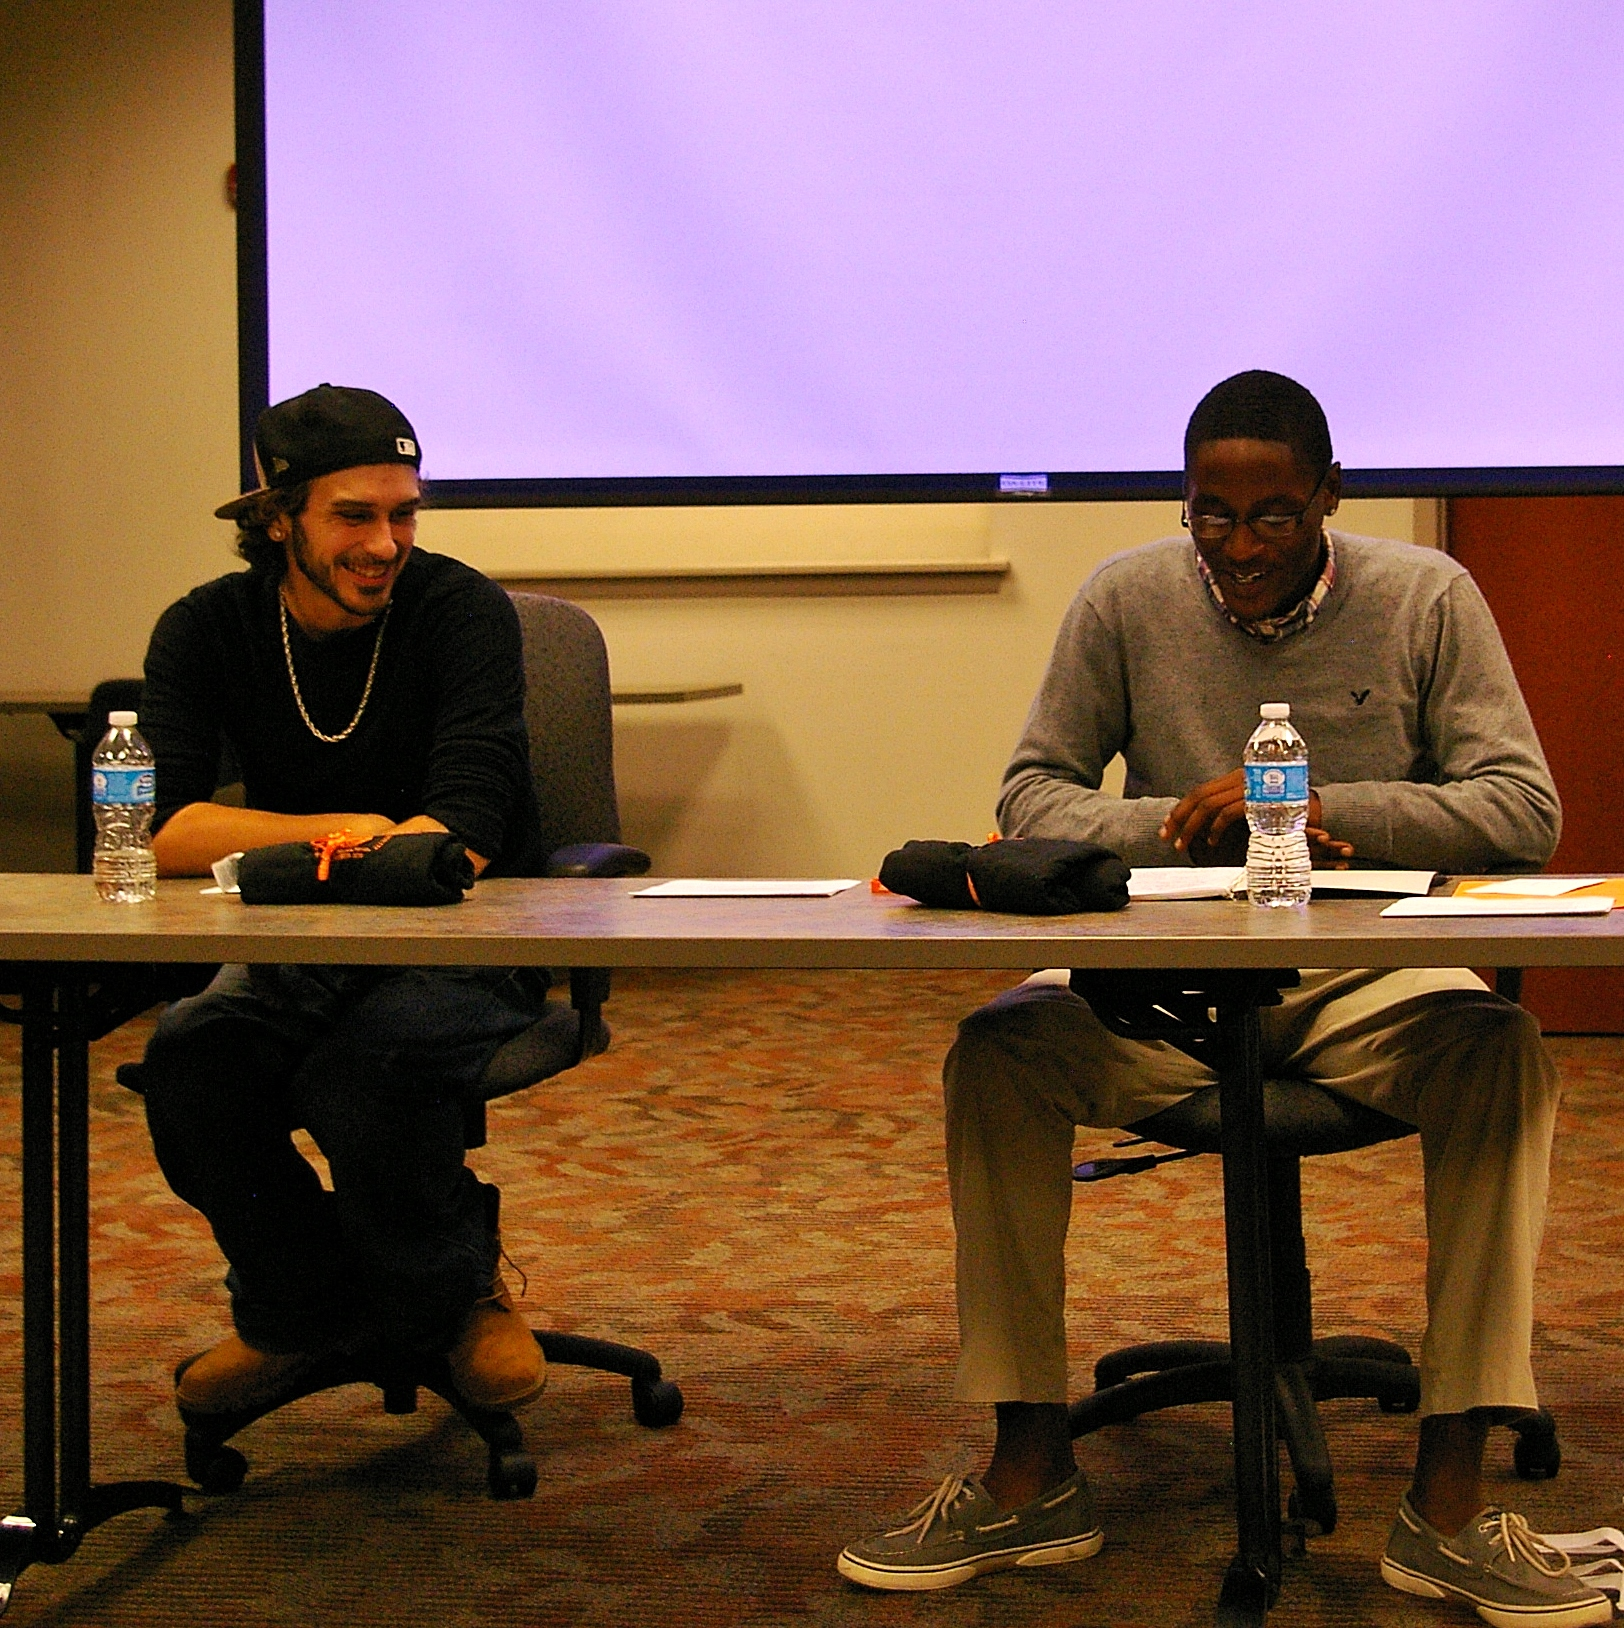 Rob Manriquez and Isaiah Heverly share their stories of being in the juvenile justice system.